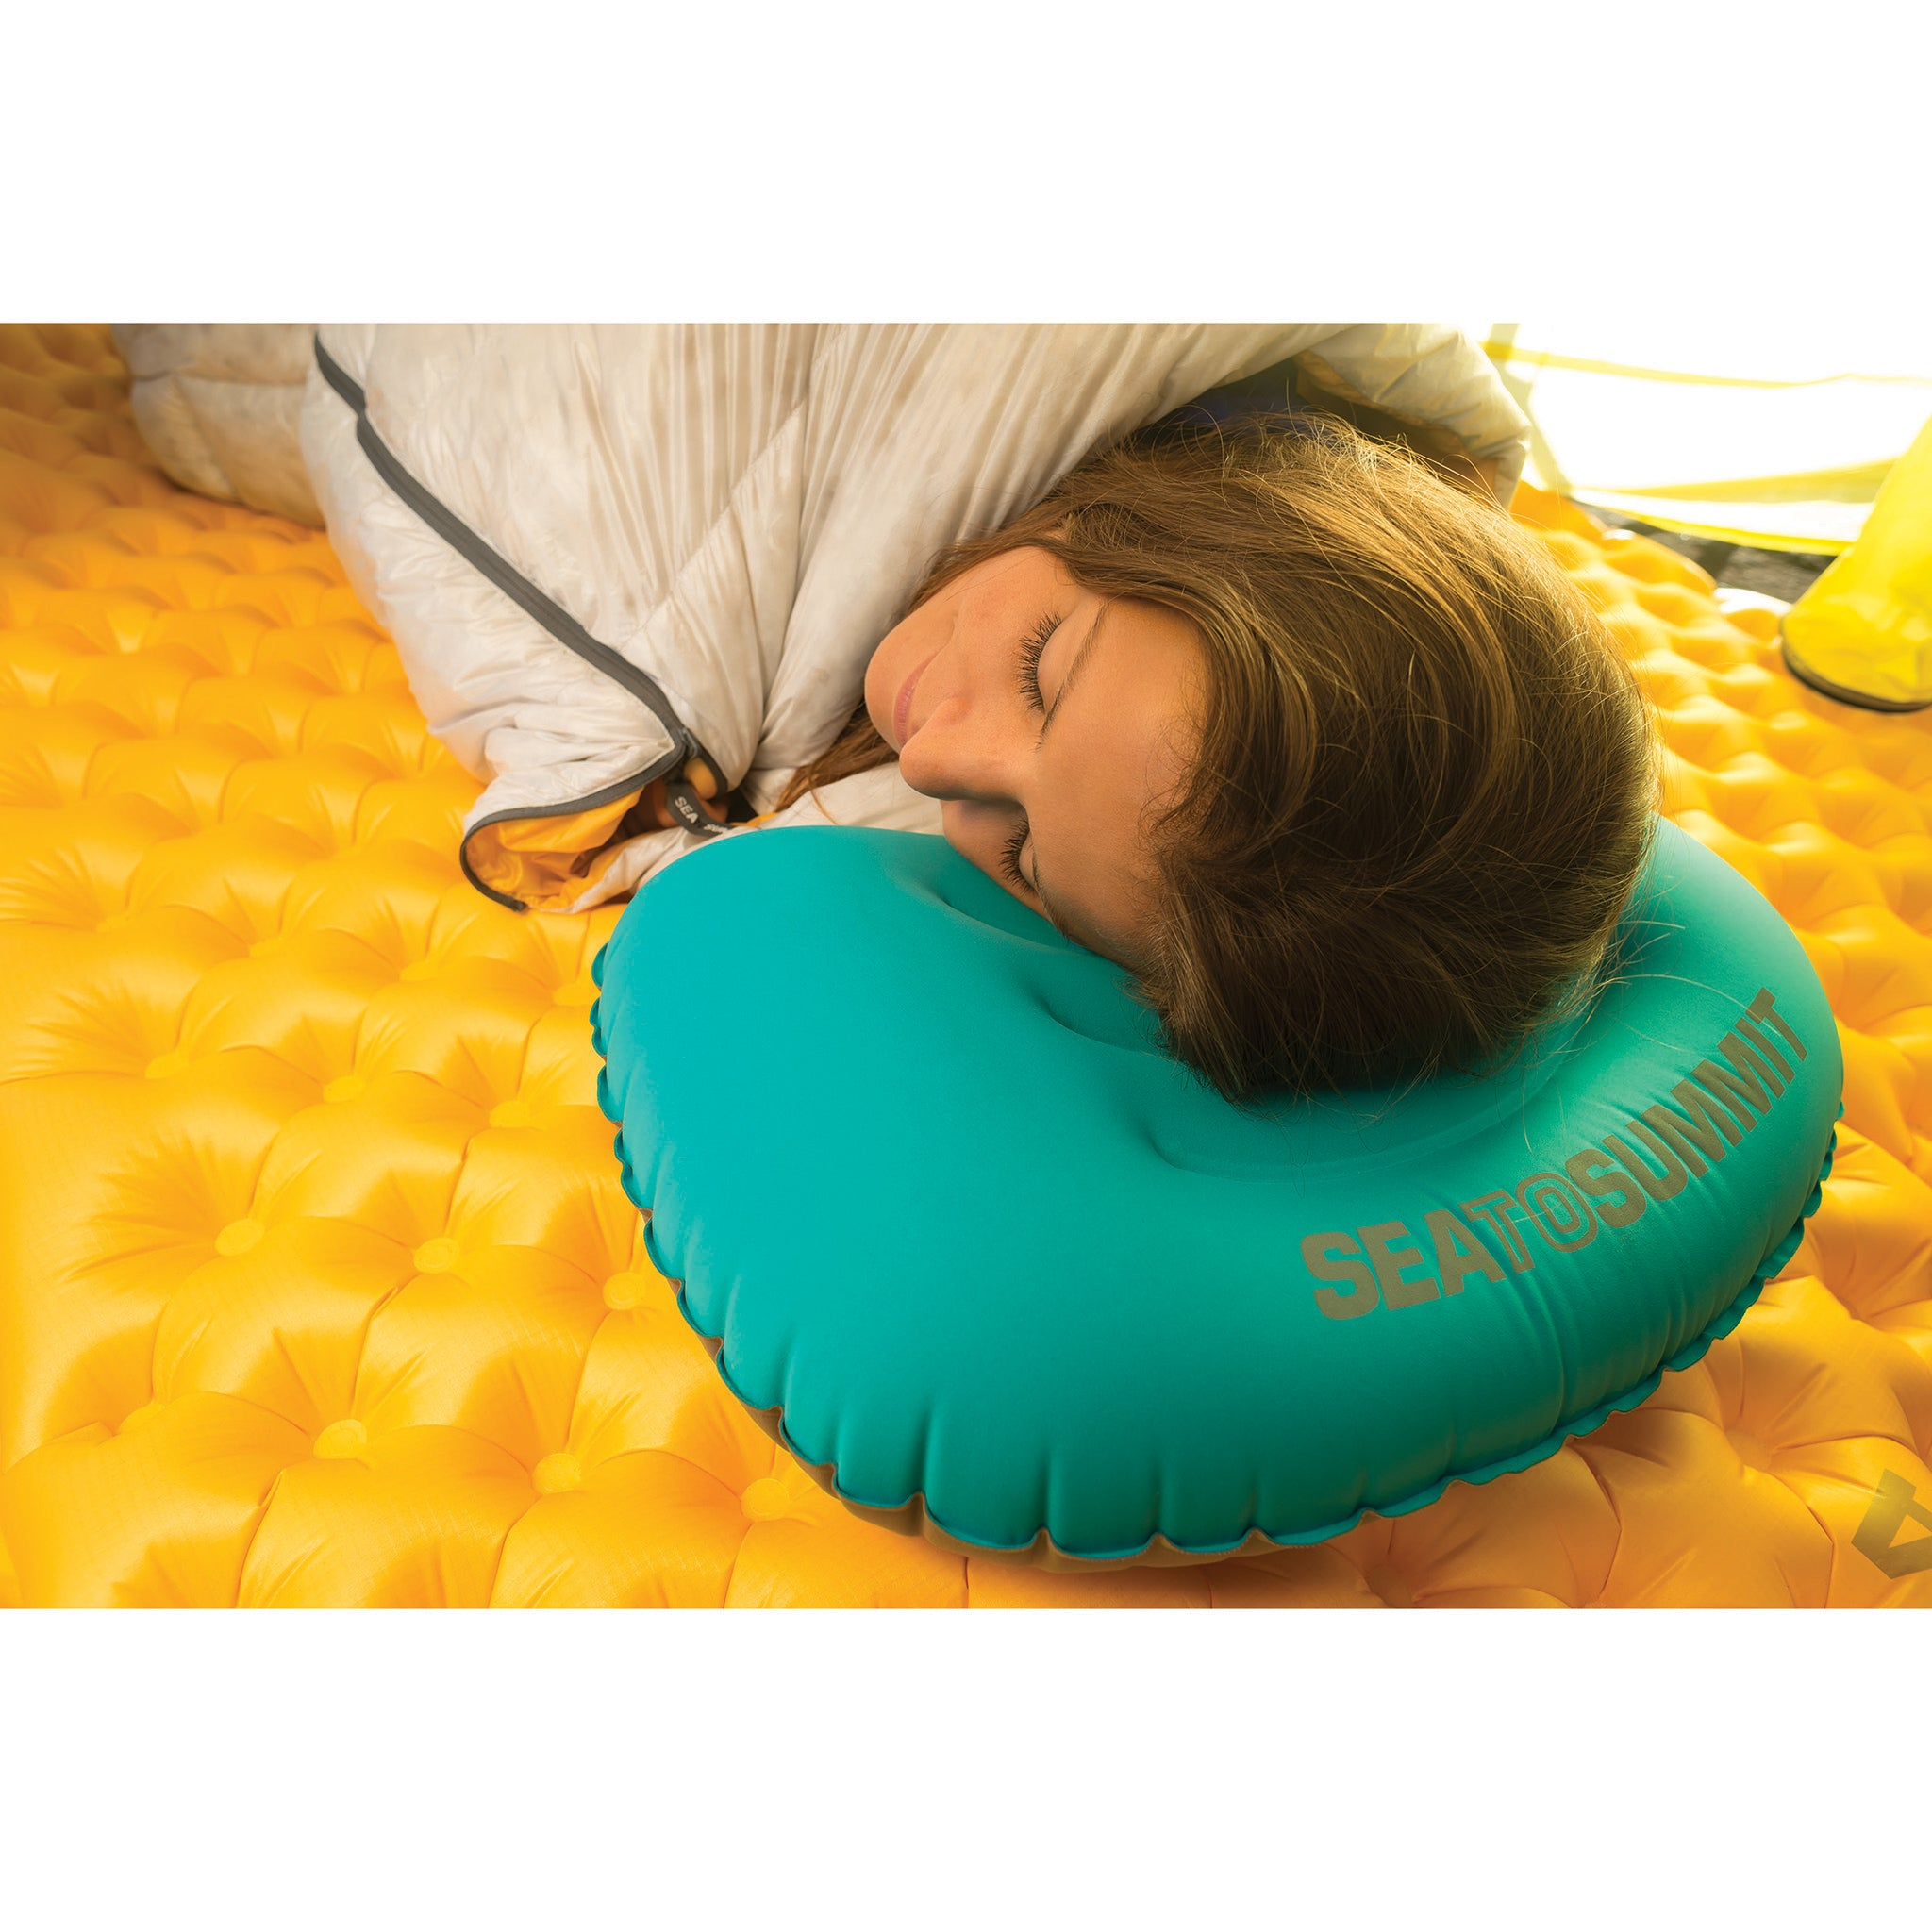 Aeros Ultralight large is perfect as a camping pillow.